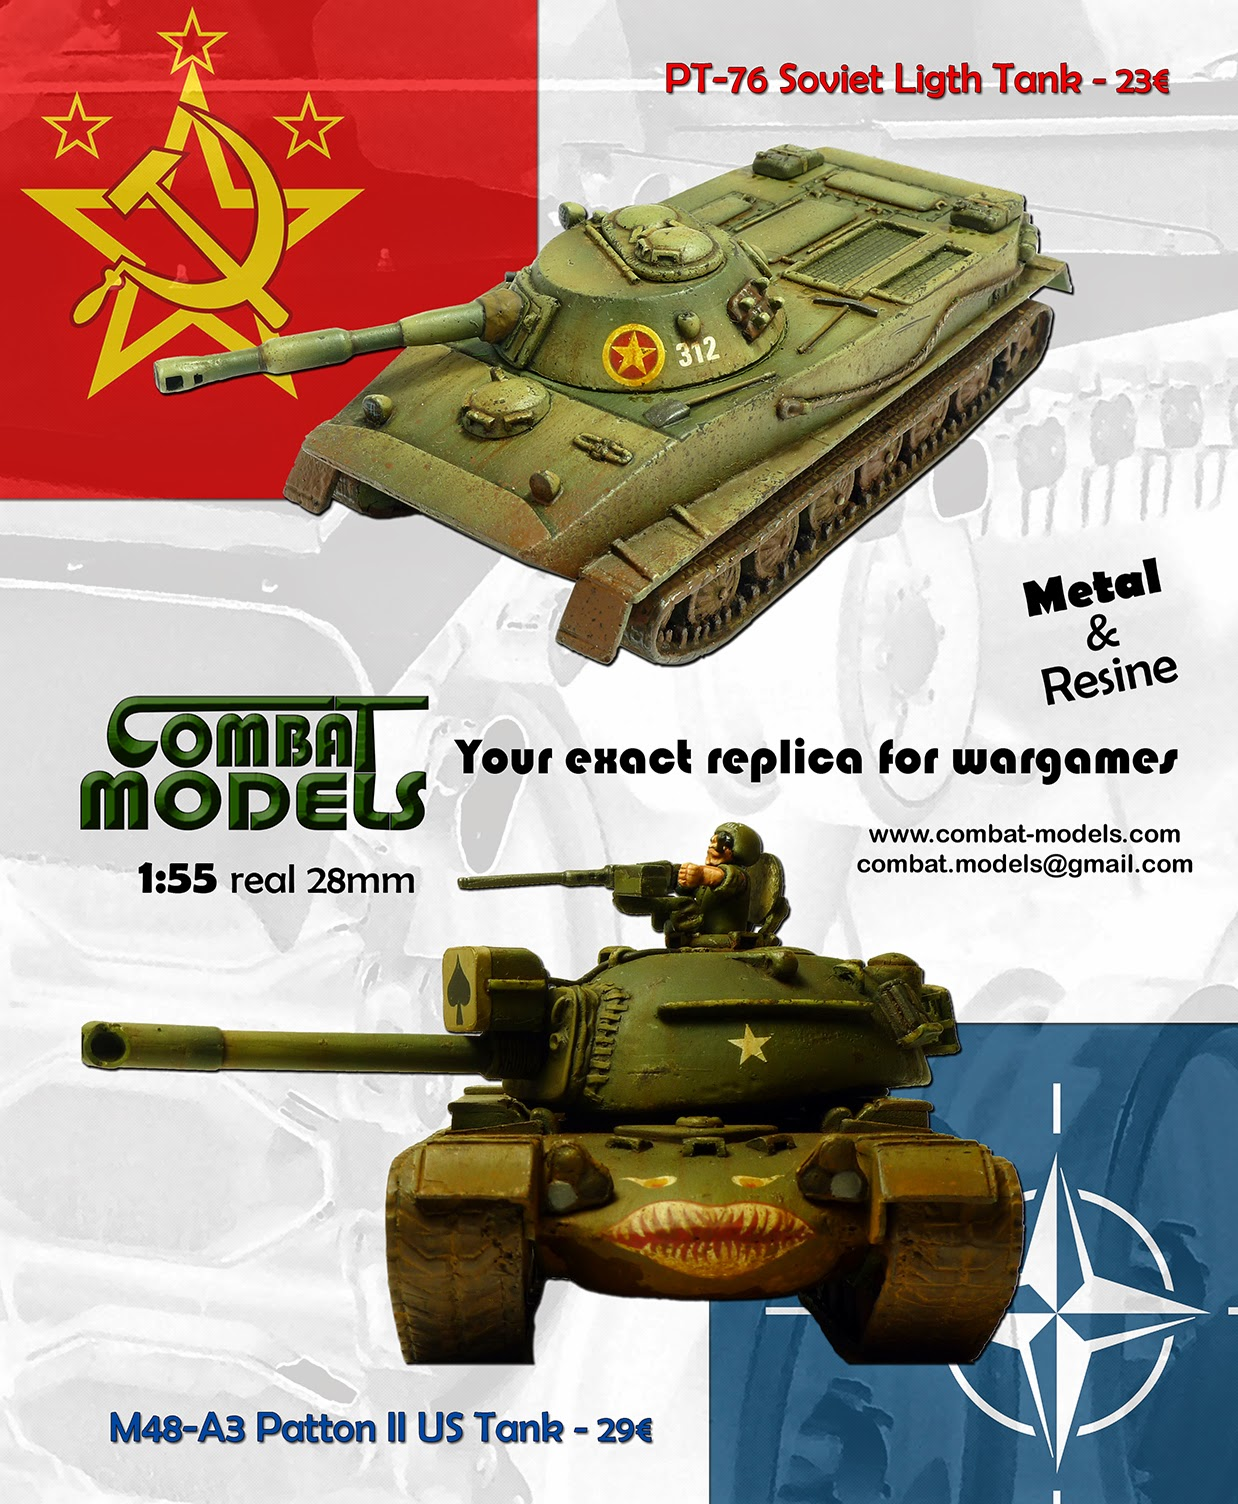 COMBAT MODELS - Cold War Tanks